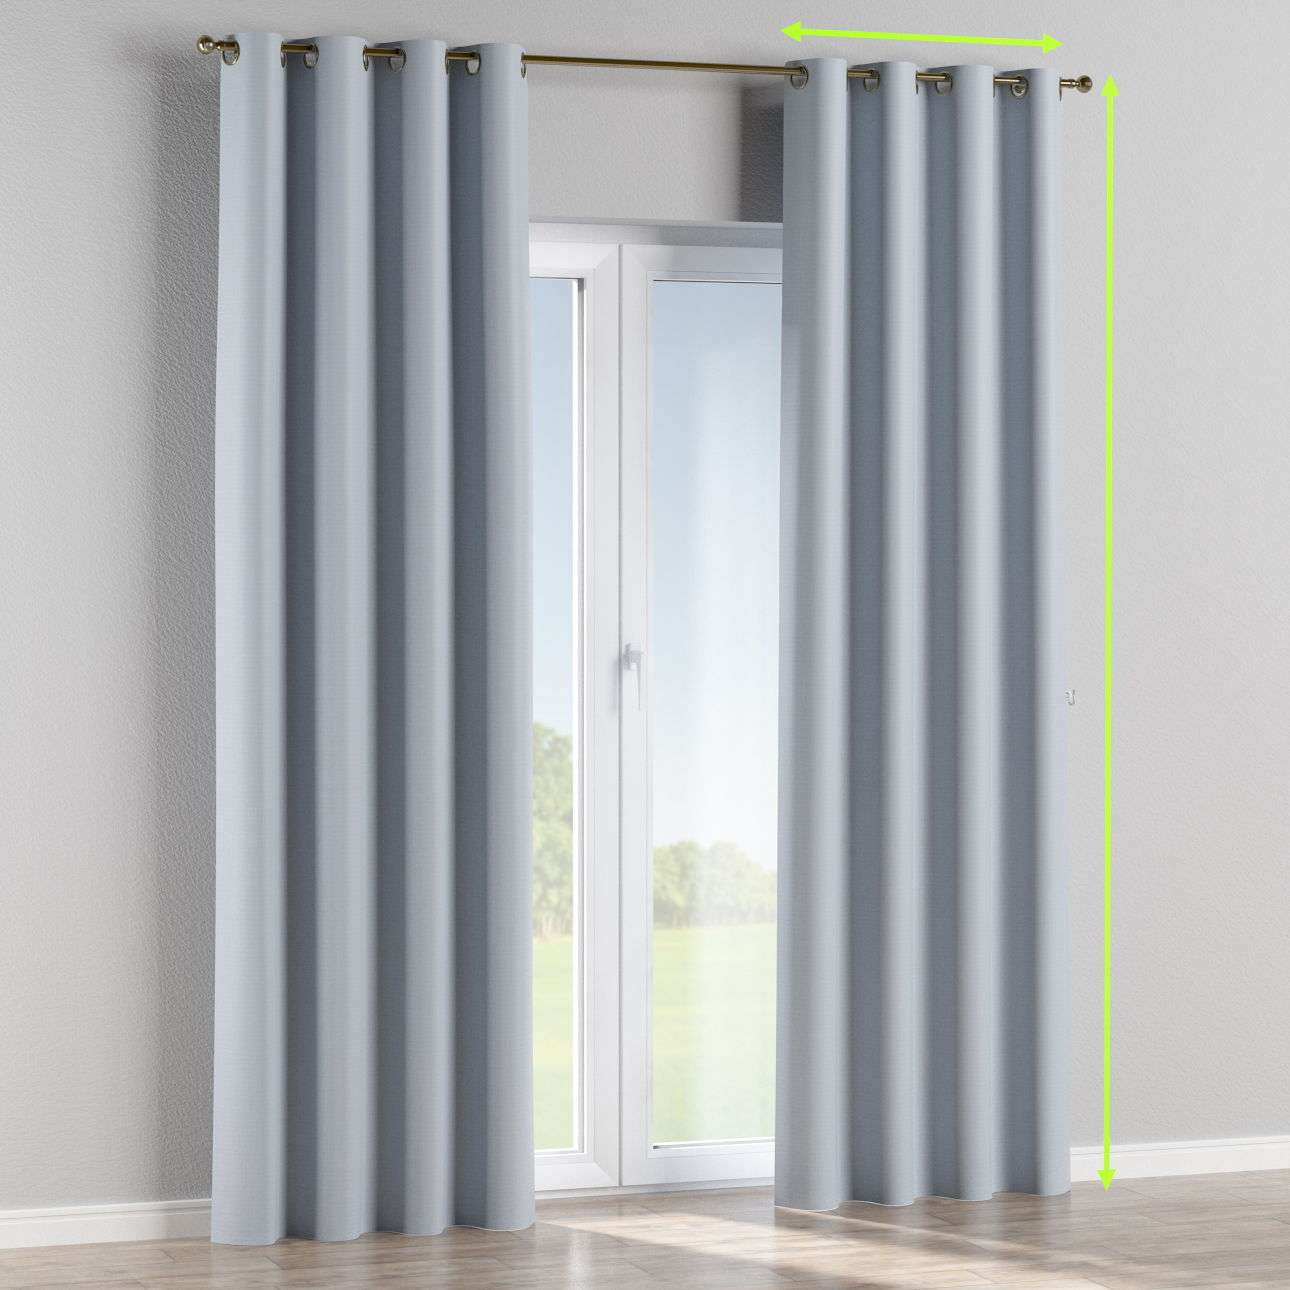 Eyelet curtains in collection Blackout, fabric: 269-62